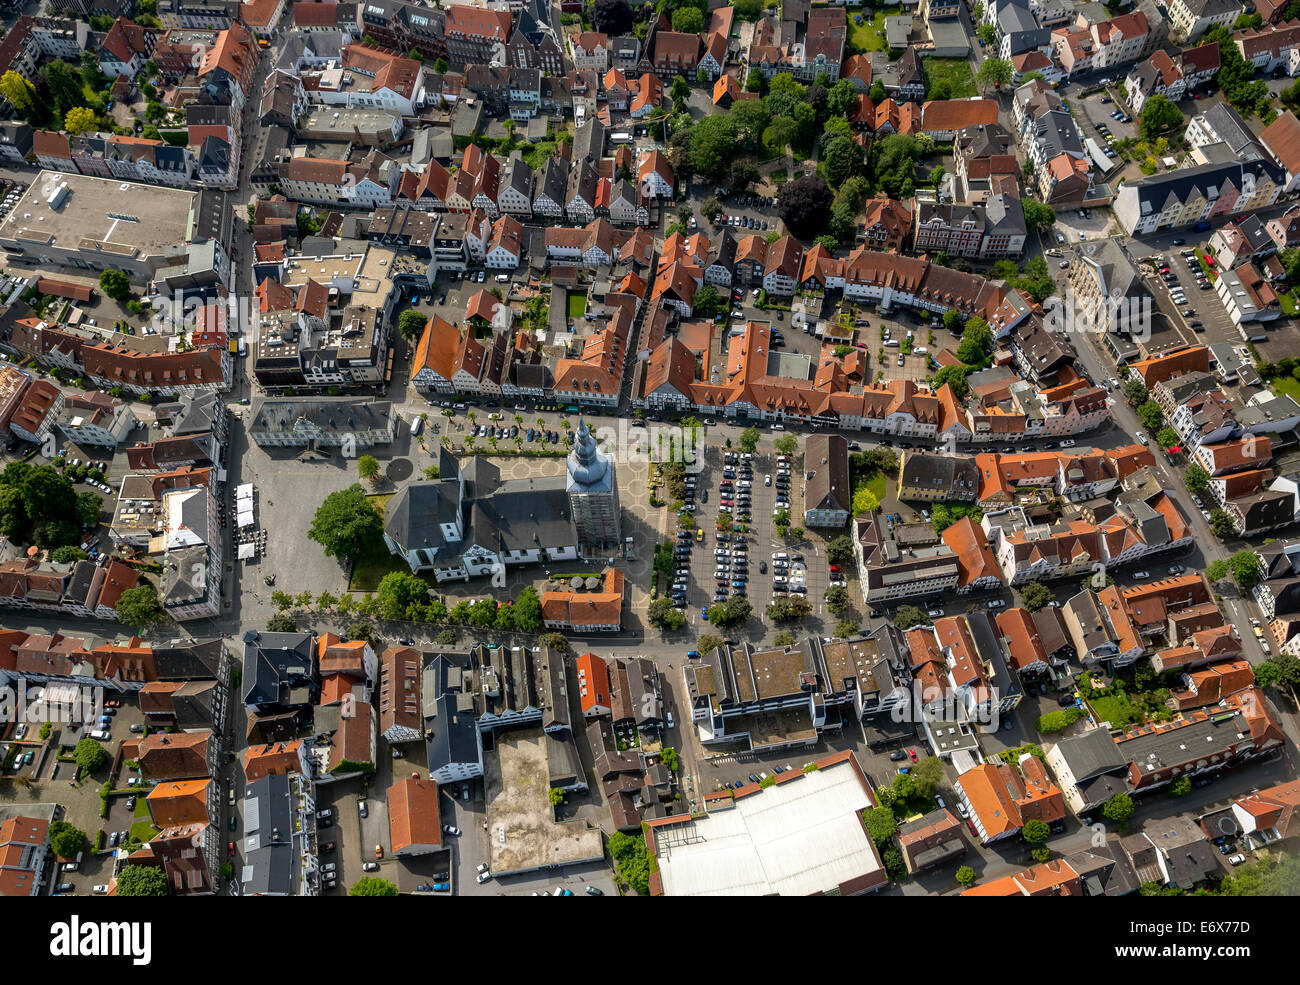 Aerial view, Große Marienkirche or St. Mary's Church, at the market square, Lippstadt, North Rhine-Westphalia, - Stock Image